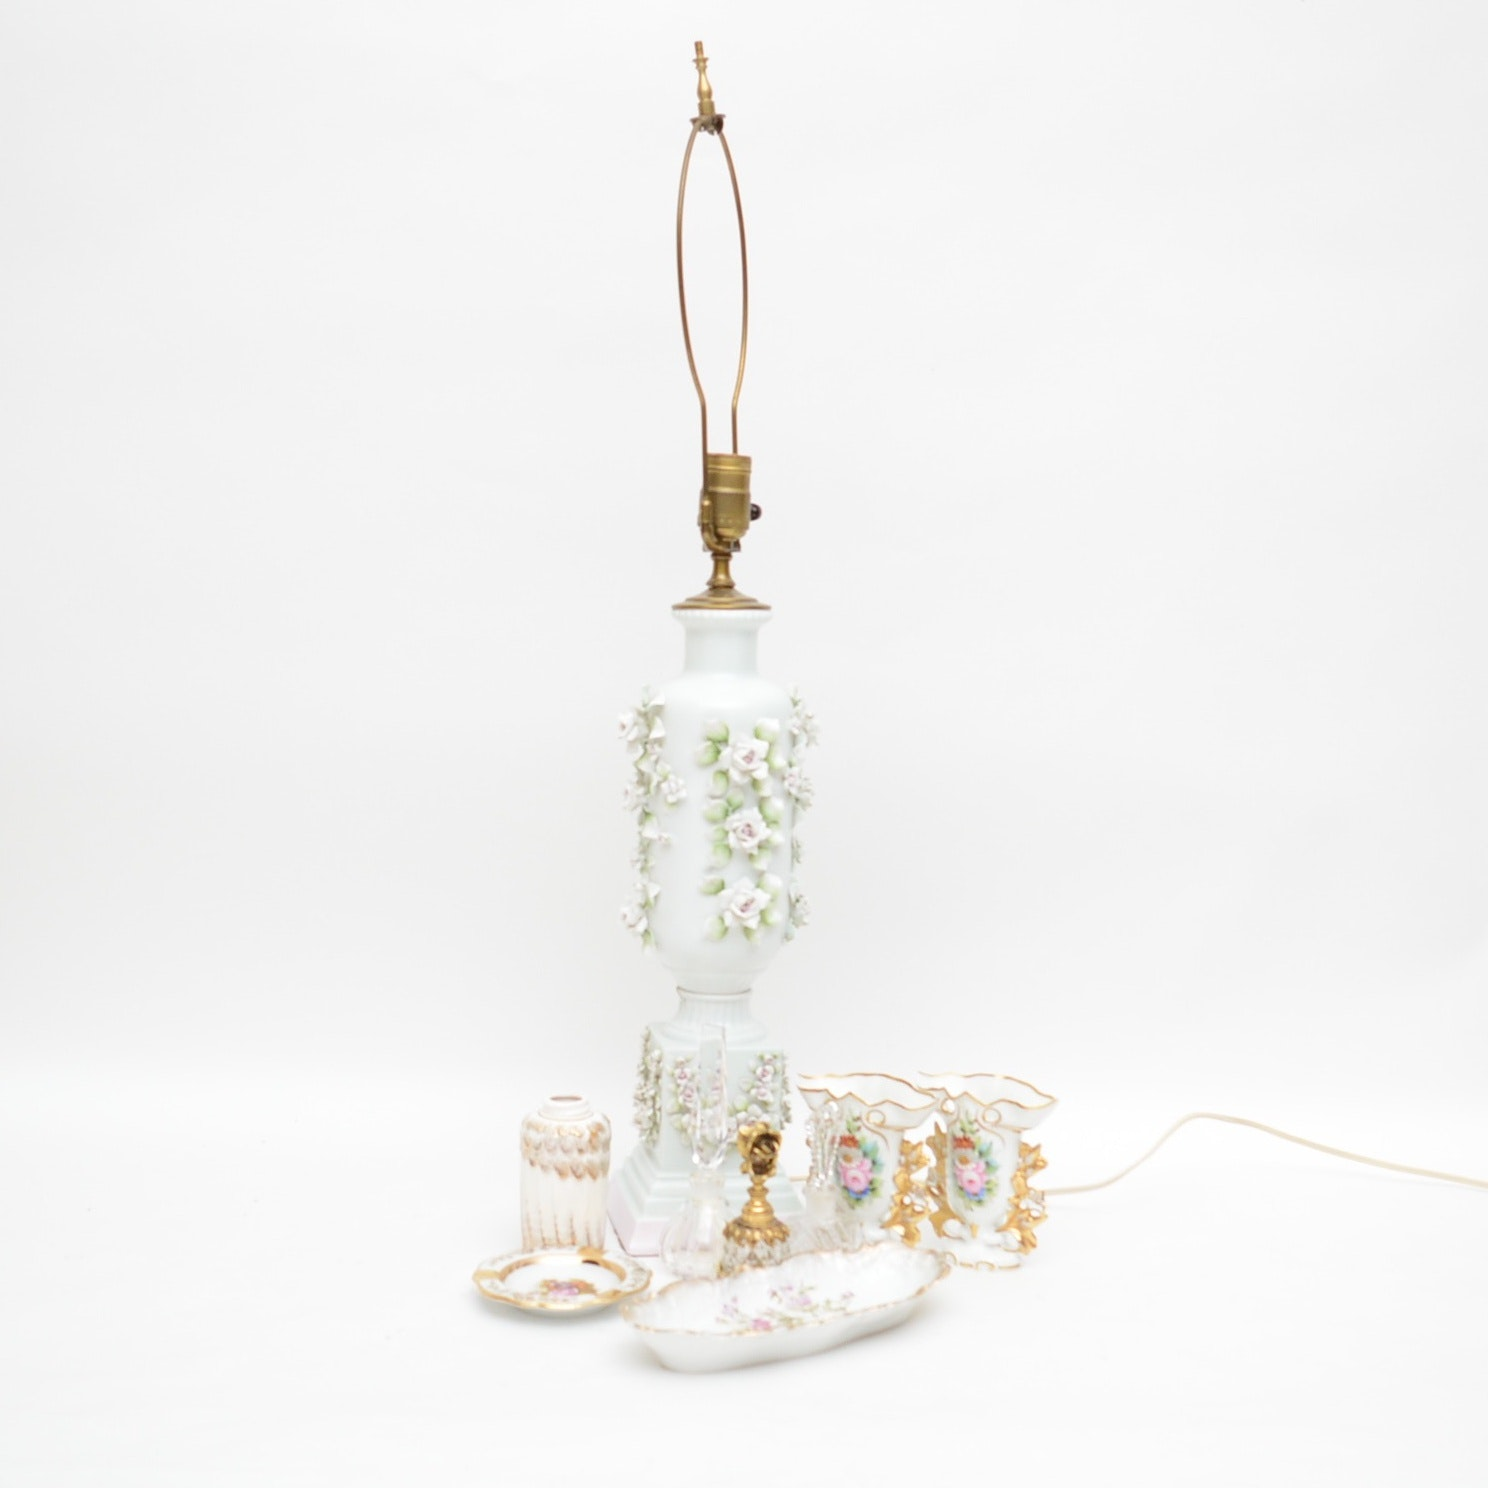 Capodimonte Style Porcelain Table Lamp, Perfume Bottles and Tableware